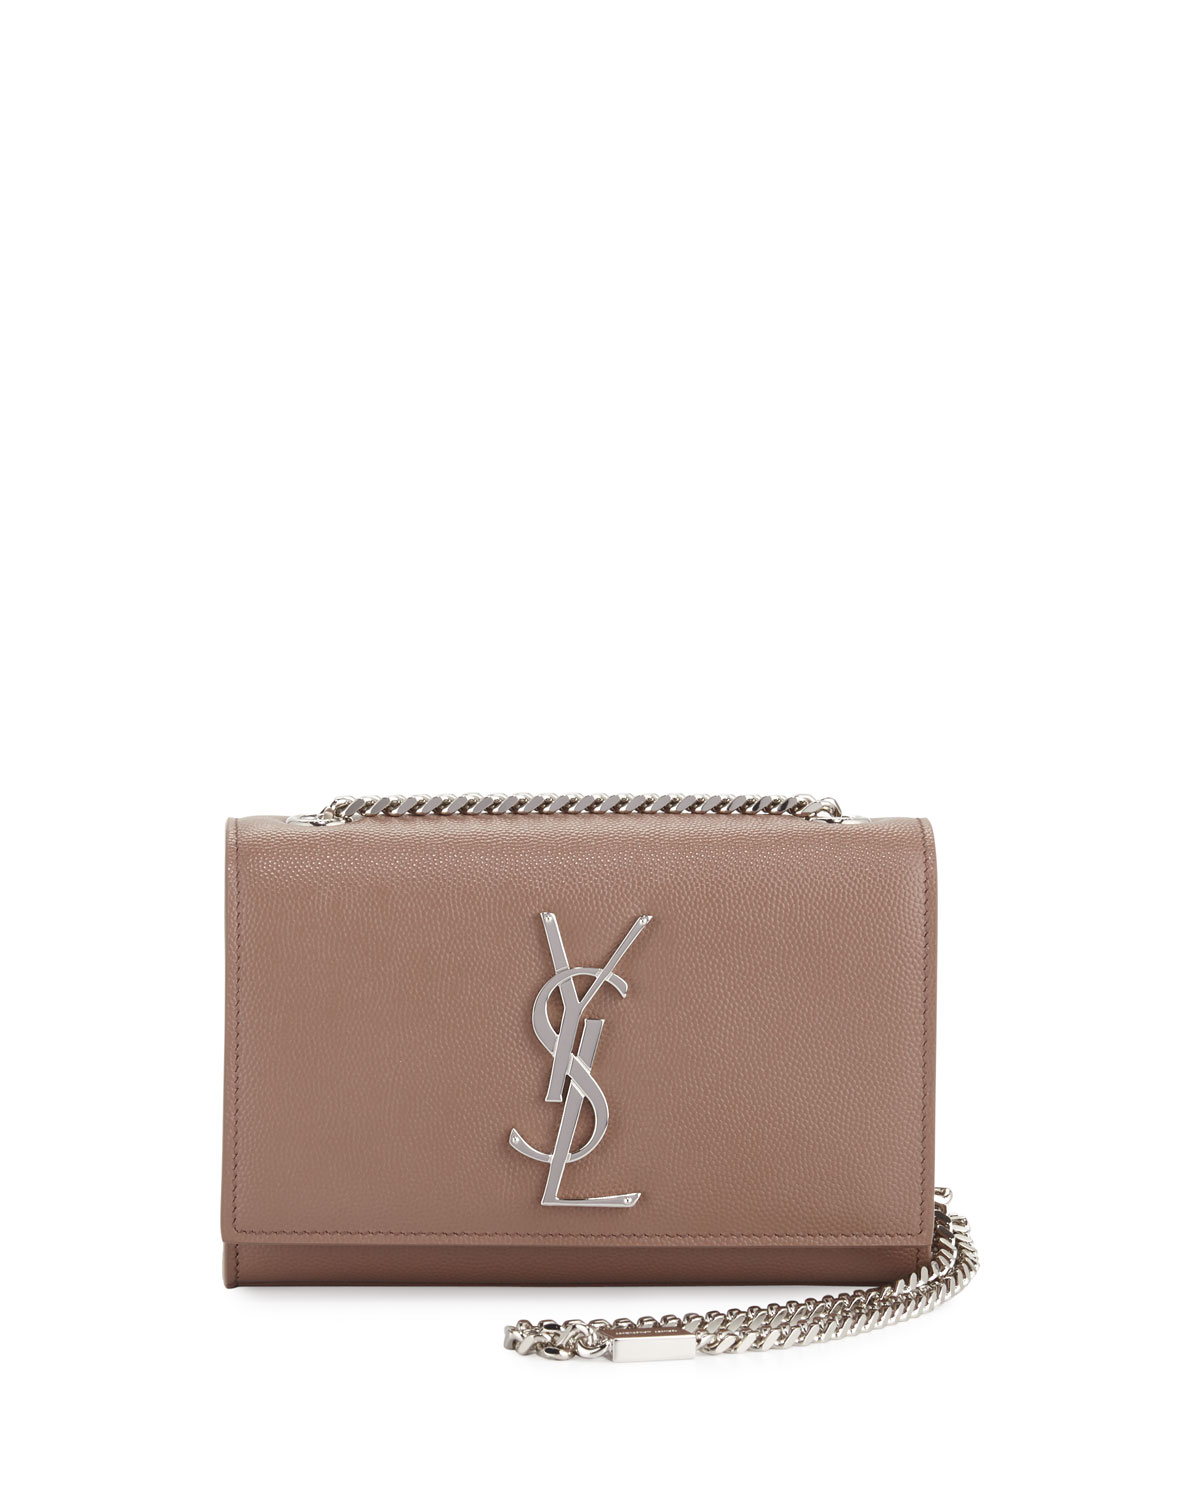 2d2ddf1aad Saint Laurent Kate Monogram Small Shoulder Bag